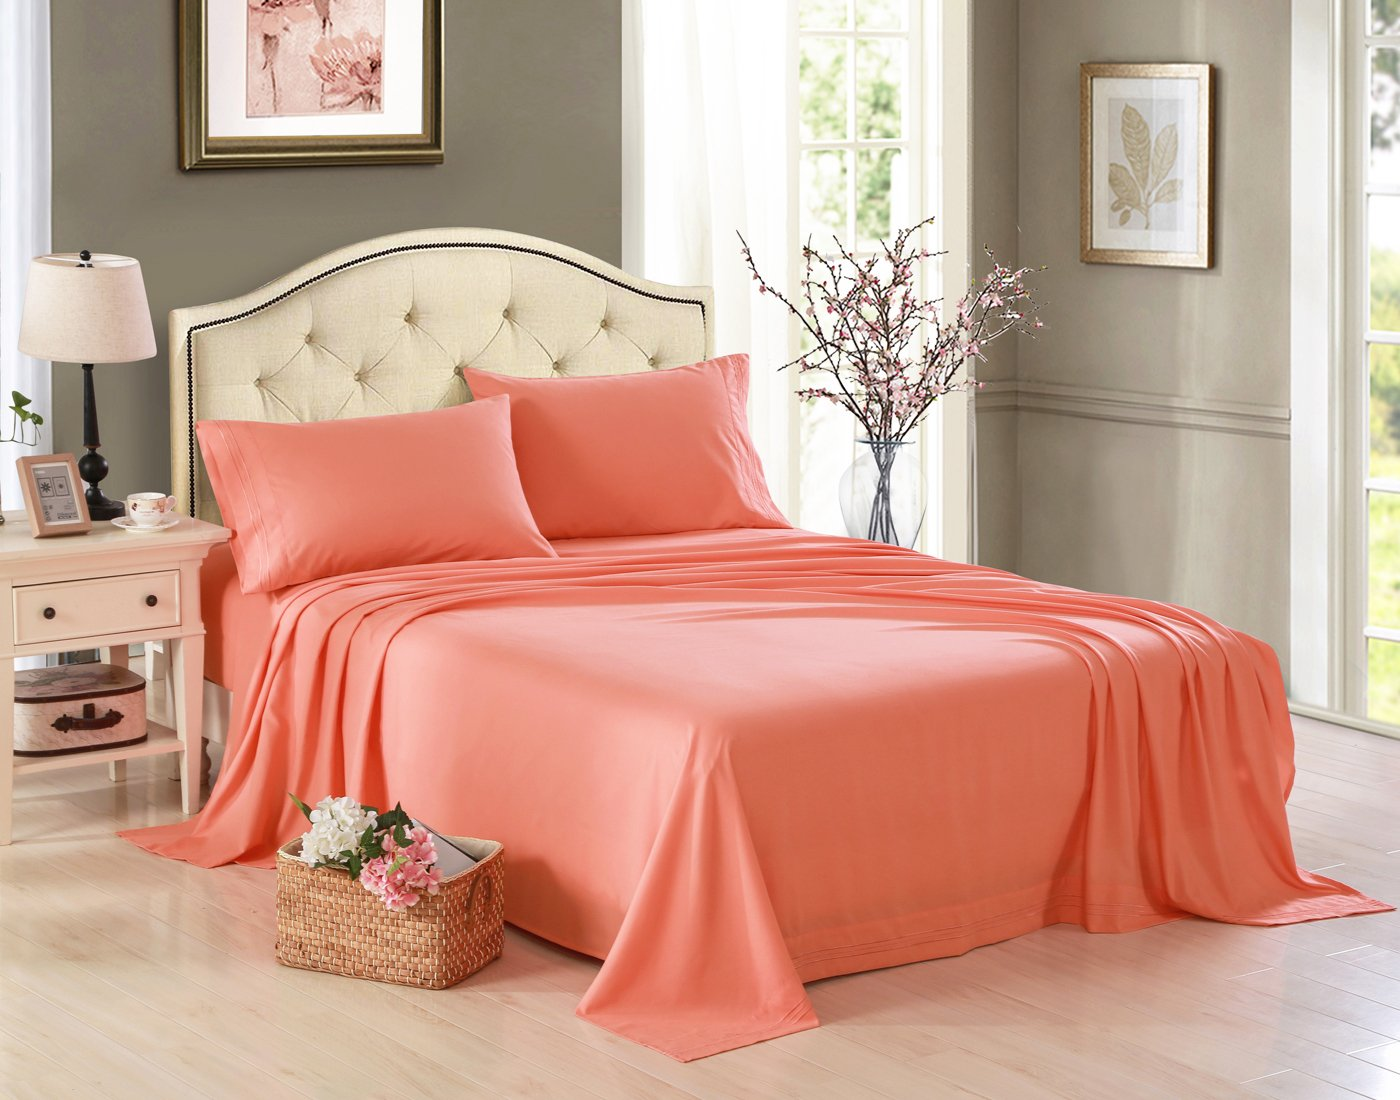 Bed sheets for wedding - Amazon Com Honeymoon Embroidered 1800 Brushed Microfiber Ultra Soft Queen Bed Sheet Set Coral Home Kitchen